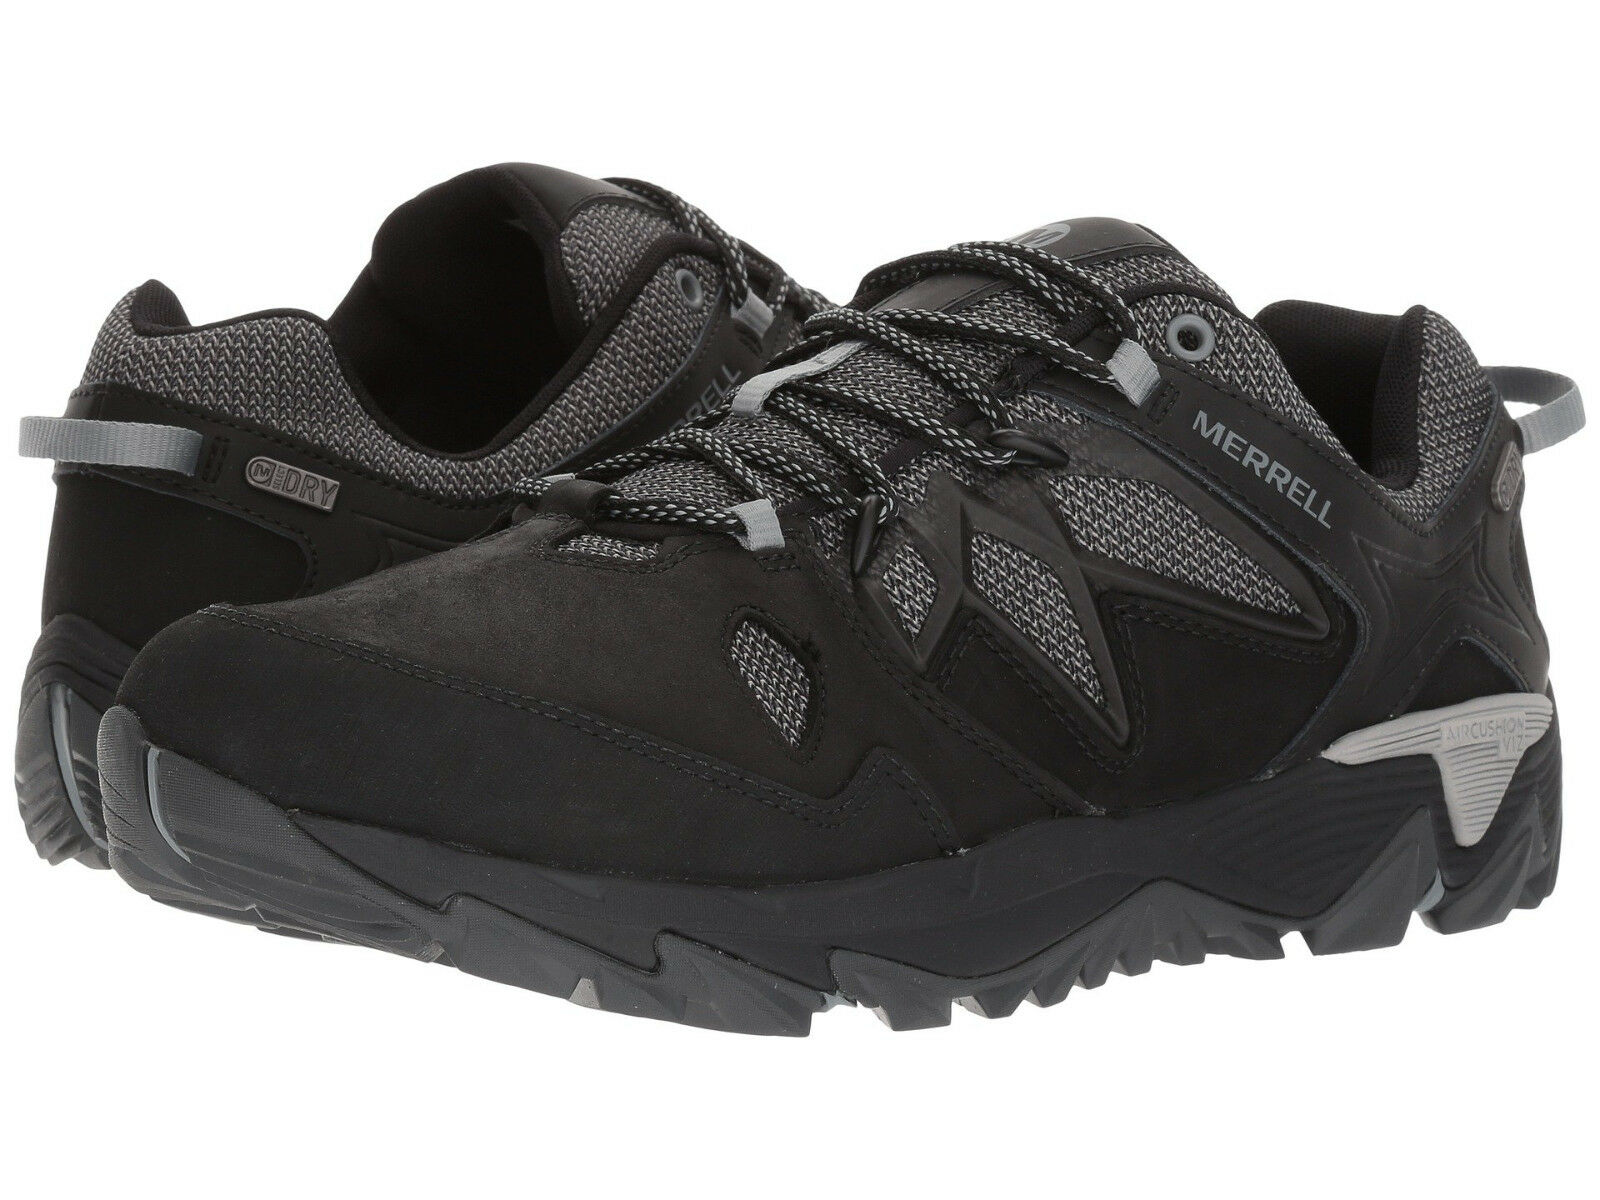 Merrell Mens All Out Blaze 2 Low Trainers Kicks Trail Running Hiking shoes  2